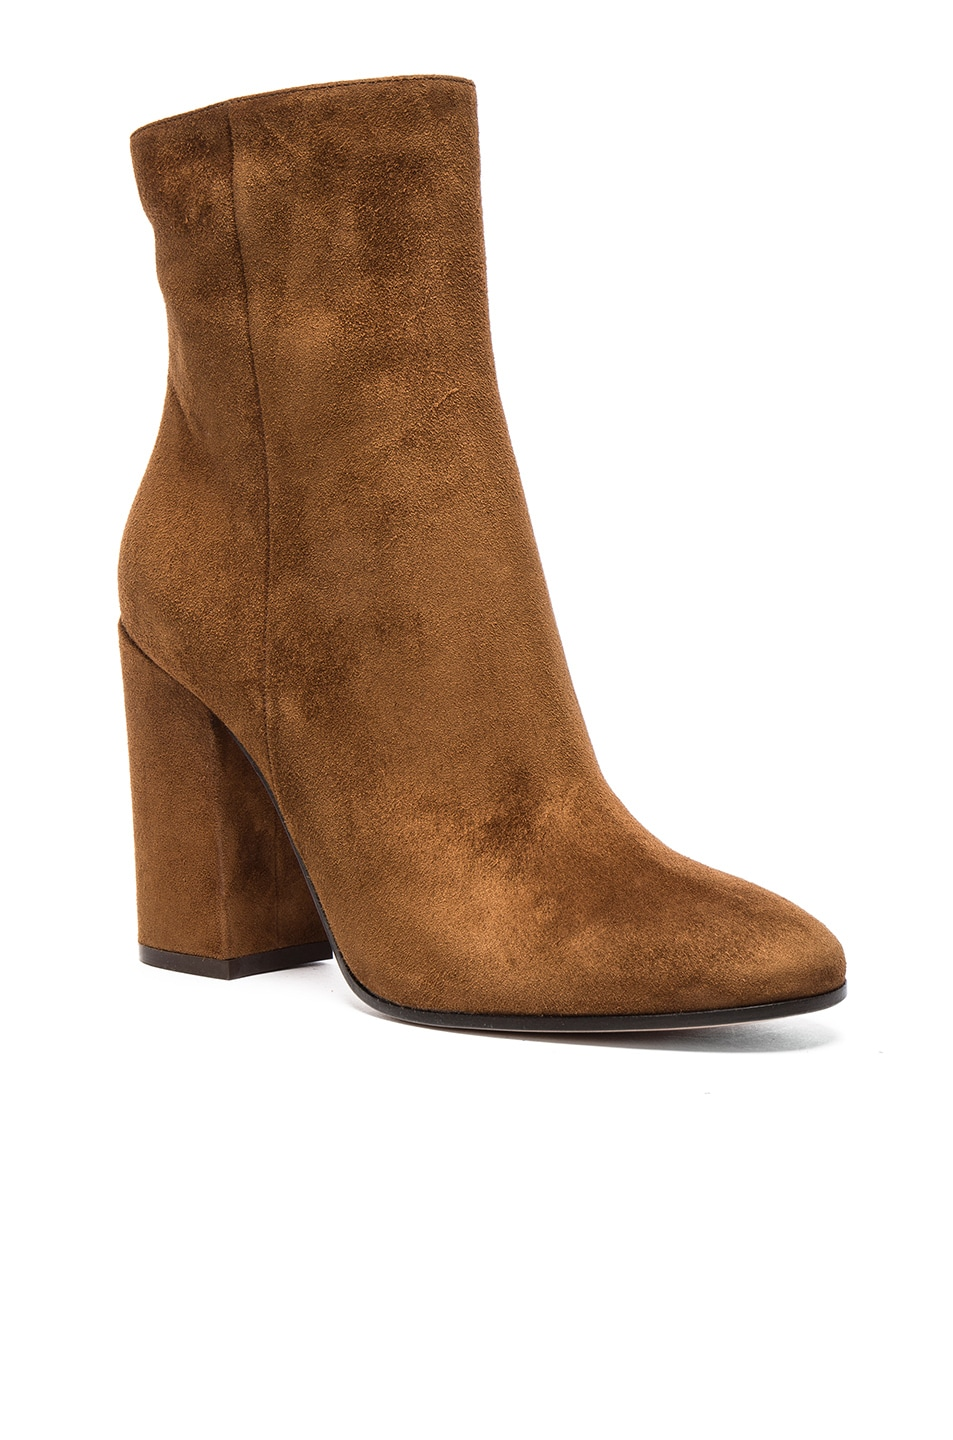 Image 2 of Gianvito Rossi Suede Boots in Texas